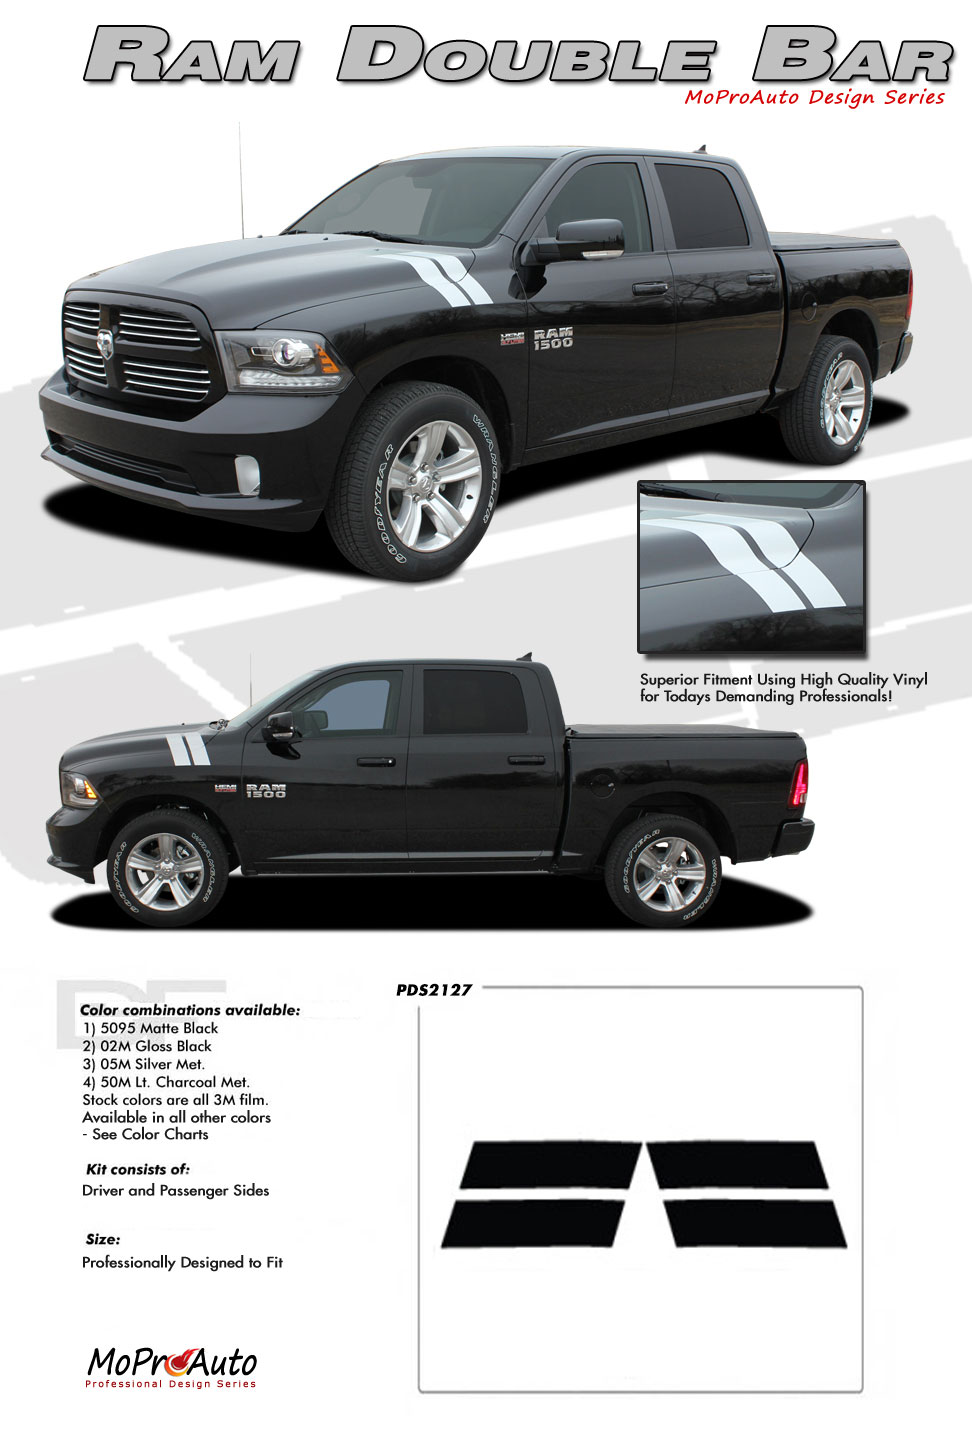 DODGE RAM DOUBLE BAR HASH HOOD MARKS - MoProAuto Pro Design Series Vinyl Graphics and Decals Kit